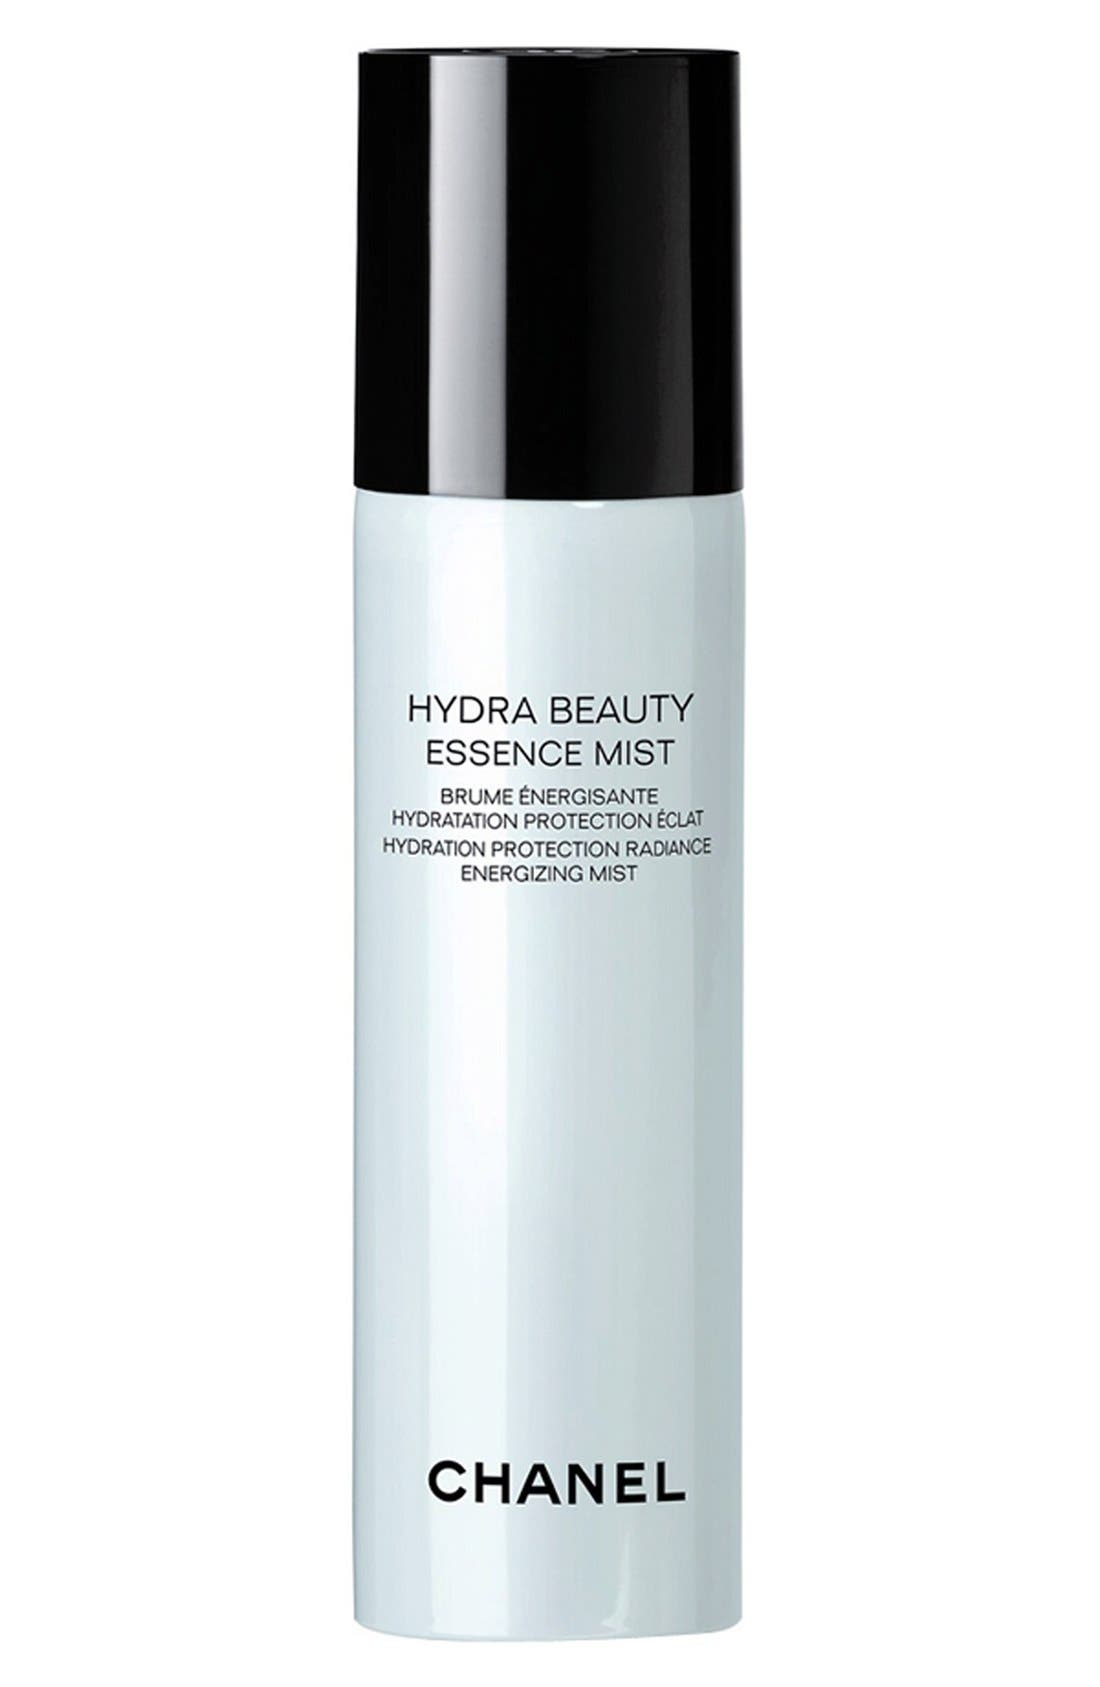 CHANEL HYDRA BEAUTY ESSENCE MIST<br />Hydration Protection Radiance Energizing Mist, Main, color, NO COLOR